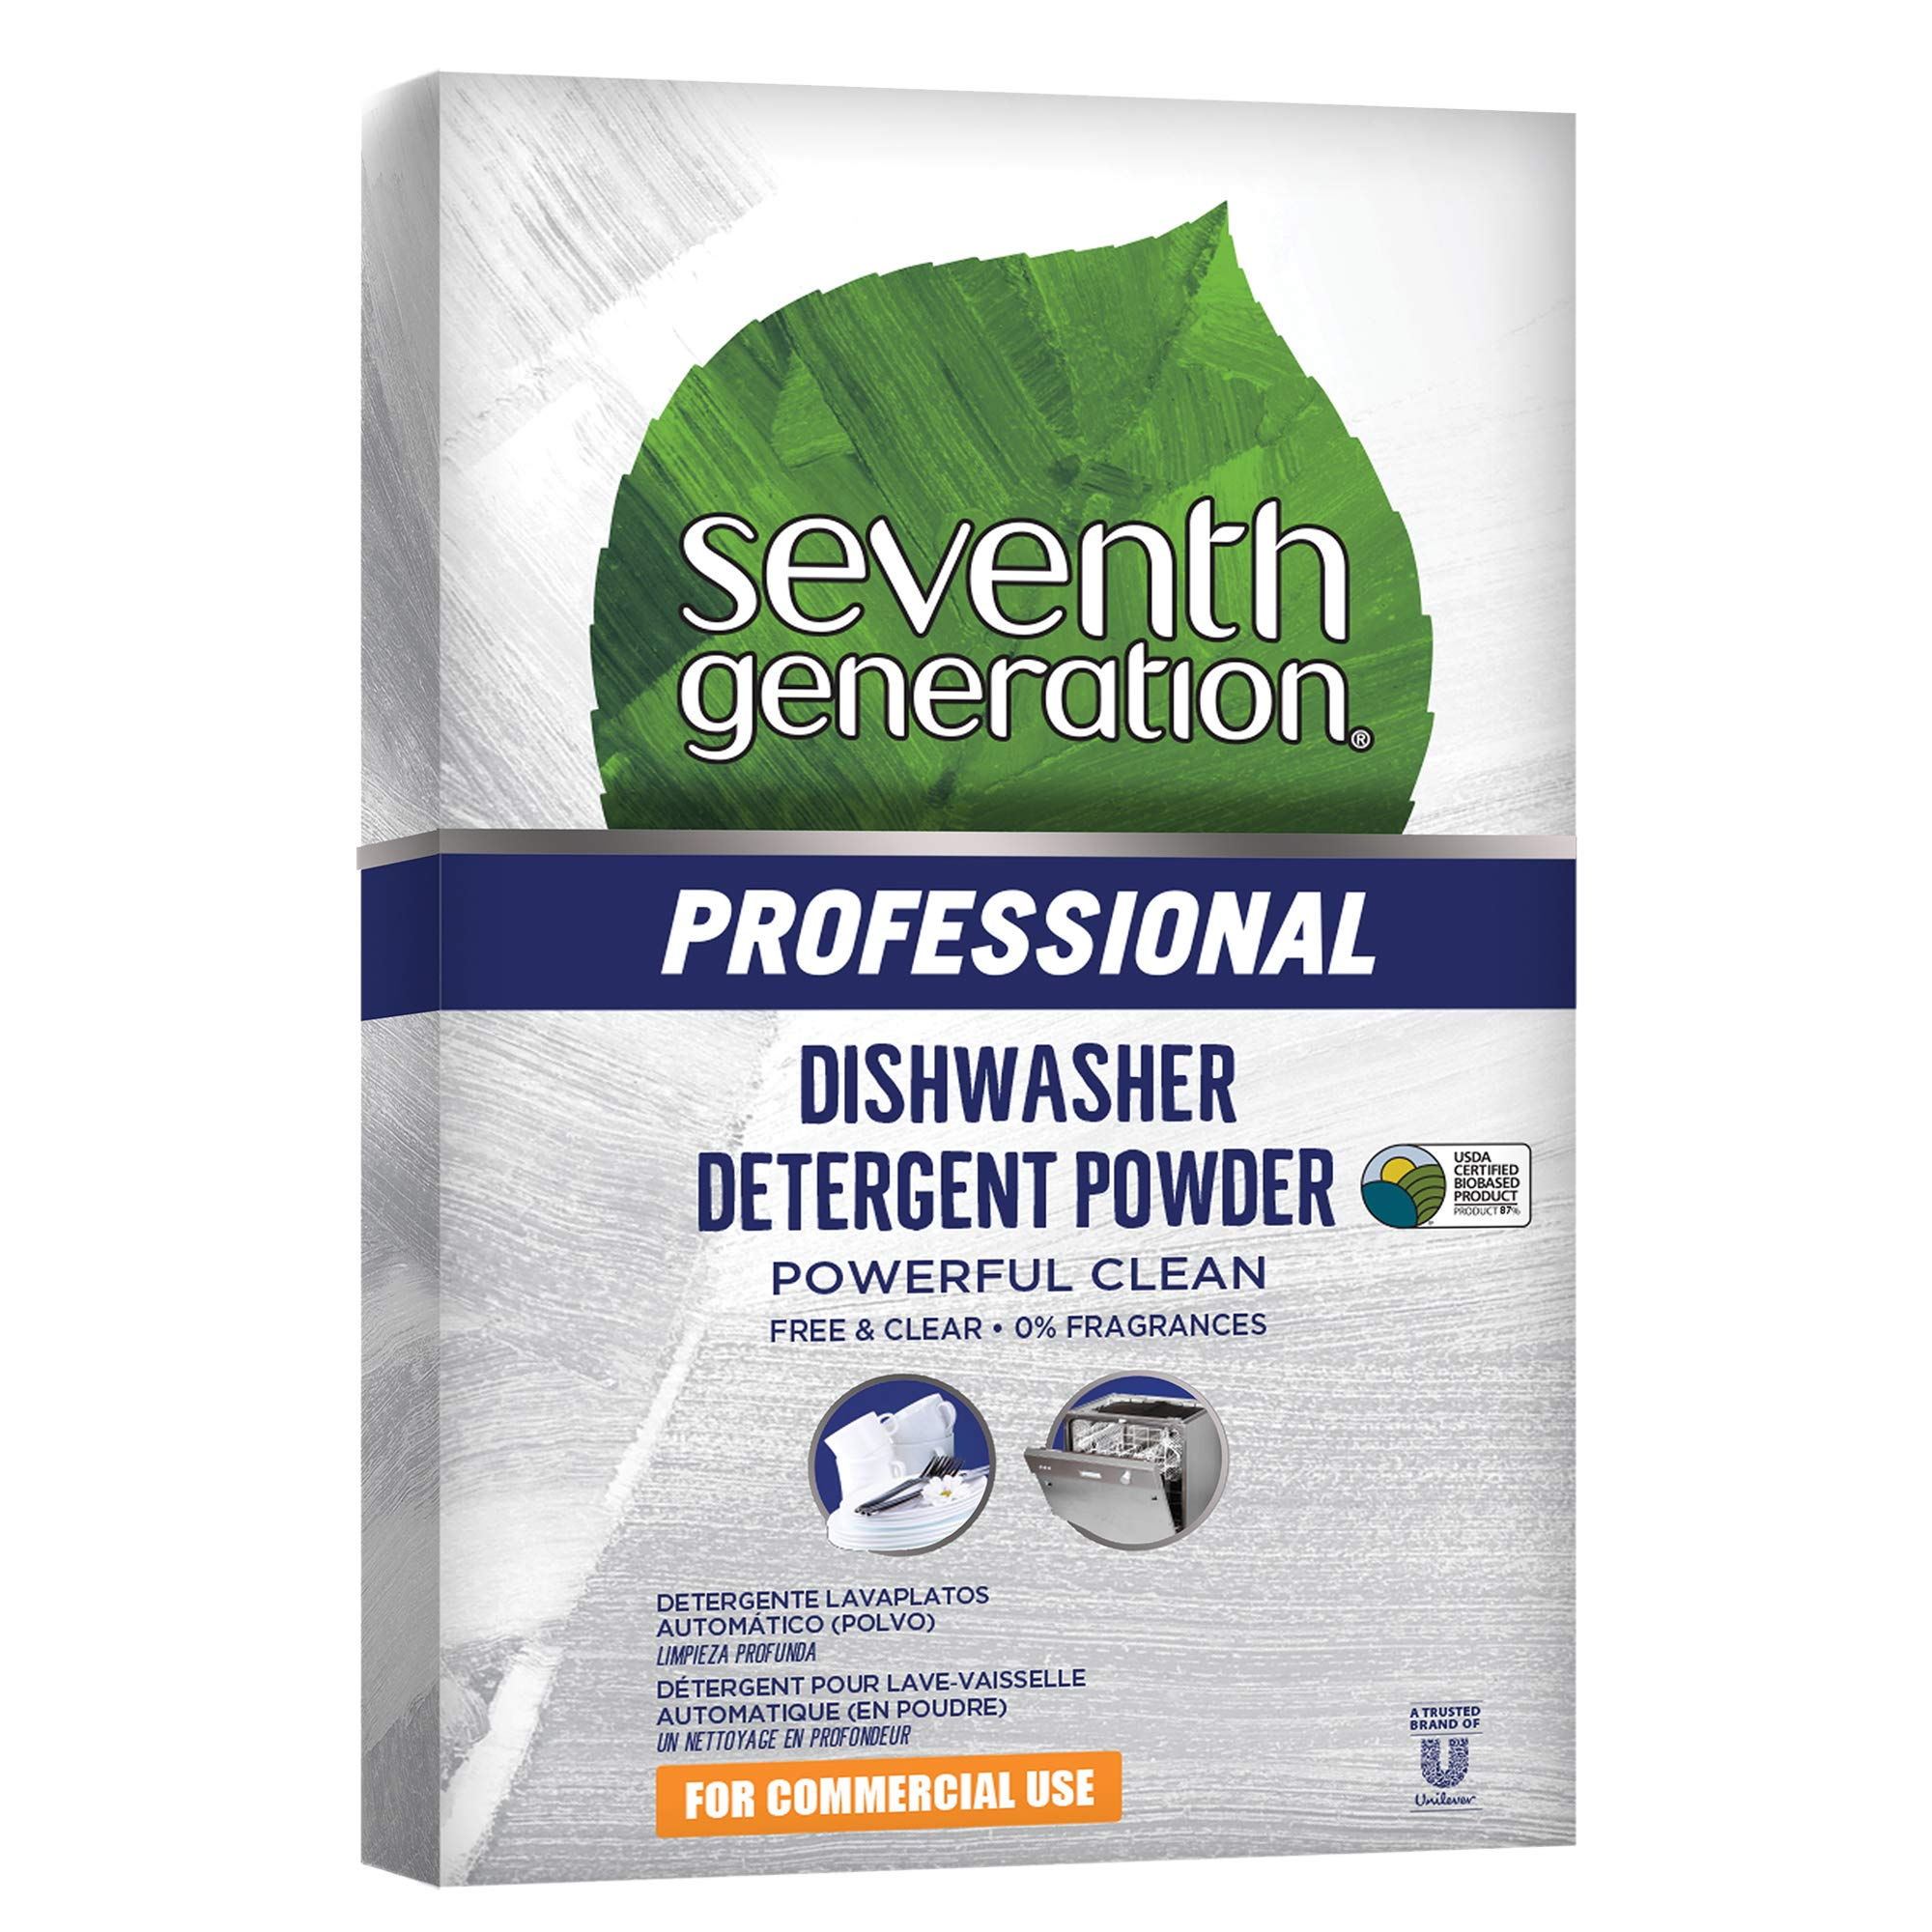 Seventh Generation Professional Dishwasher Detergent Powder, Free & Clear, Unscented, 75 oz (Pack of 8)